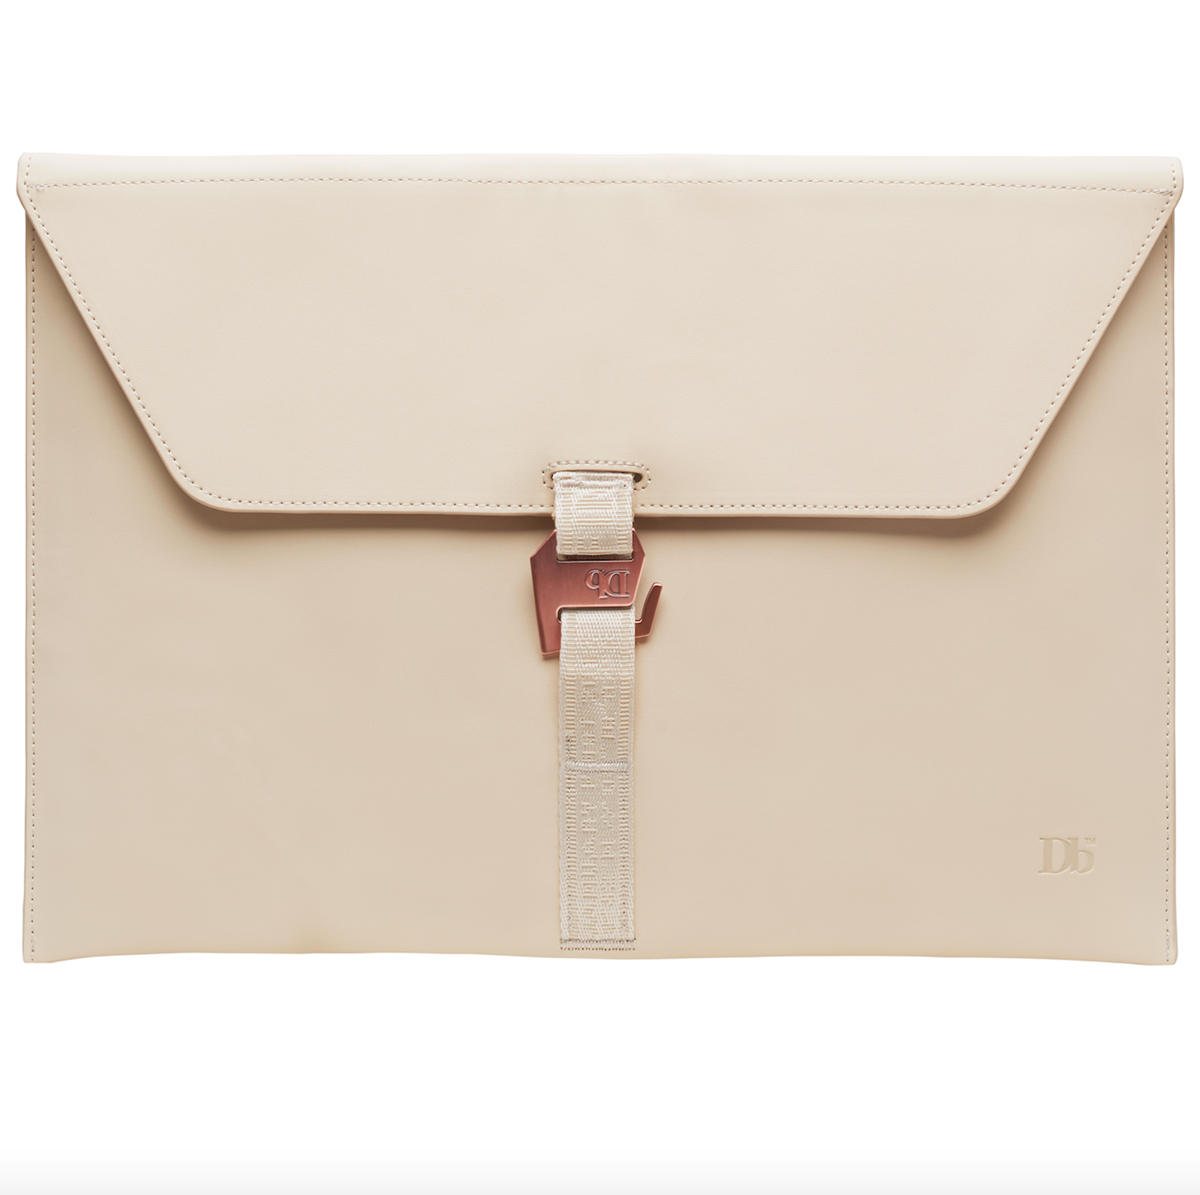 Bilde av DOUCHEBAGS THE PROPER LAPTOP SLEEVE 15```U12 BEIGE (JANNI EDITION)